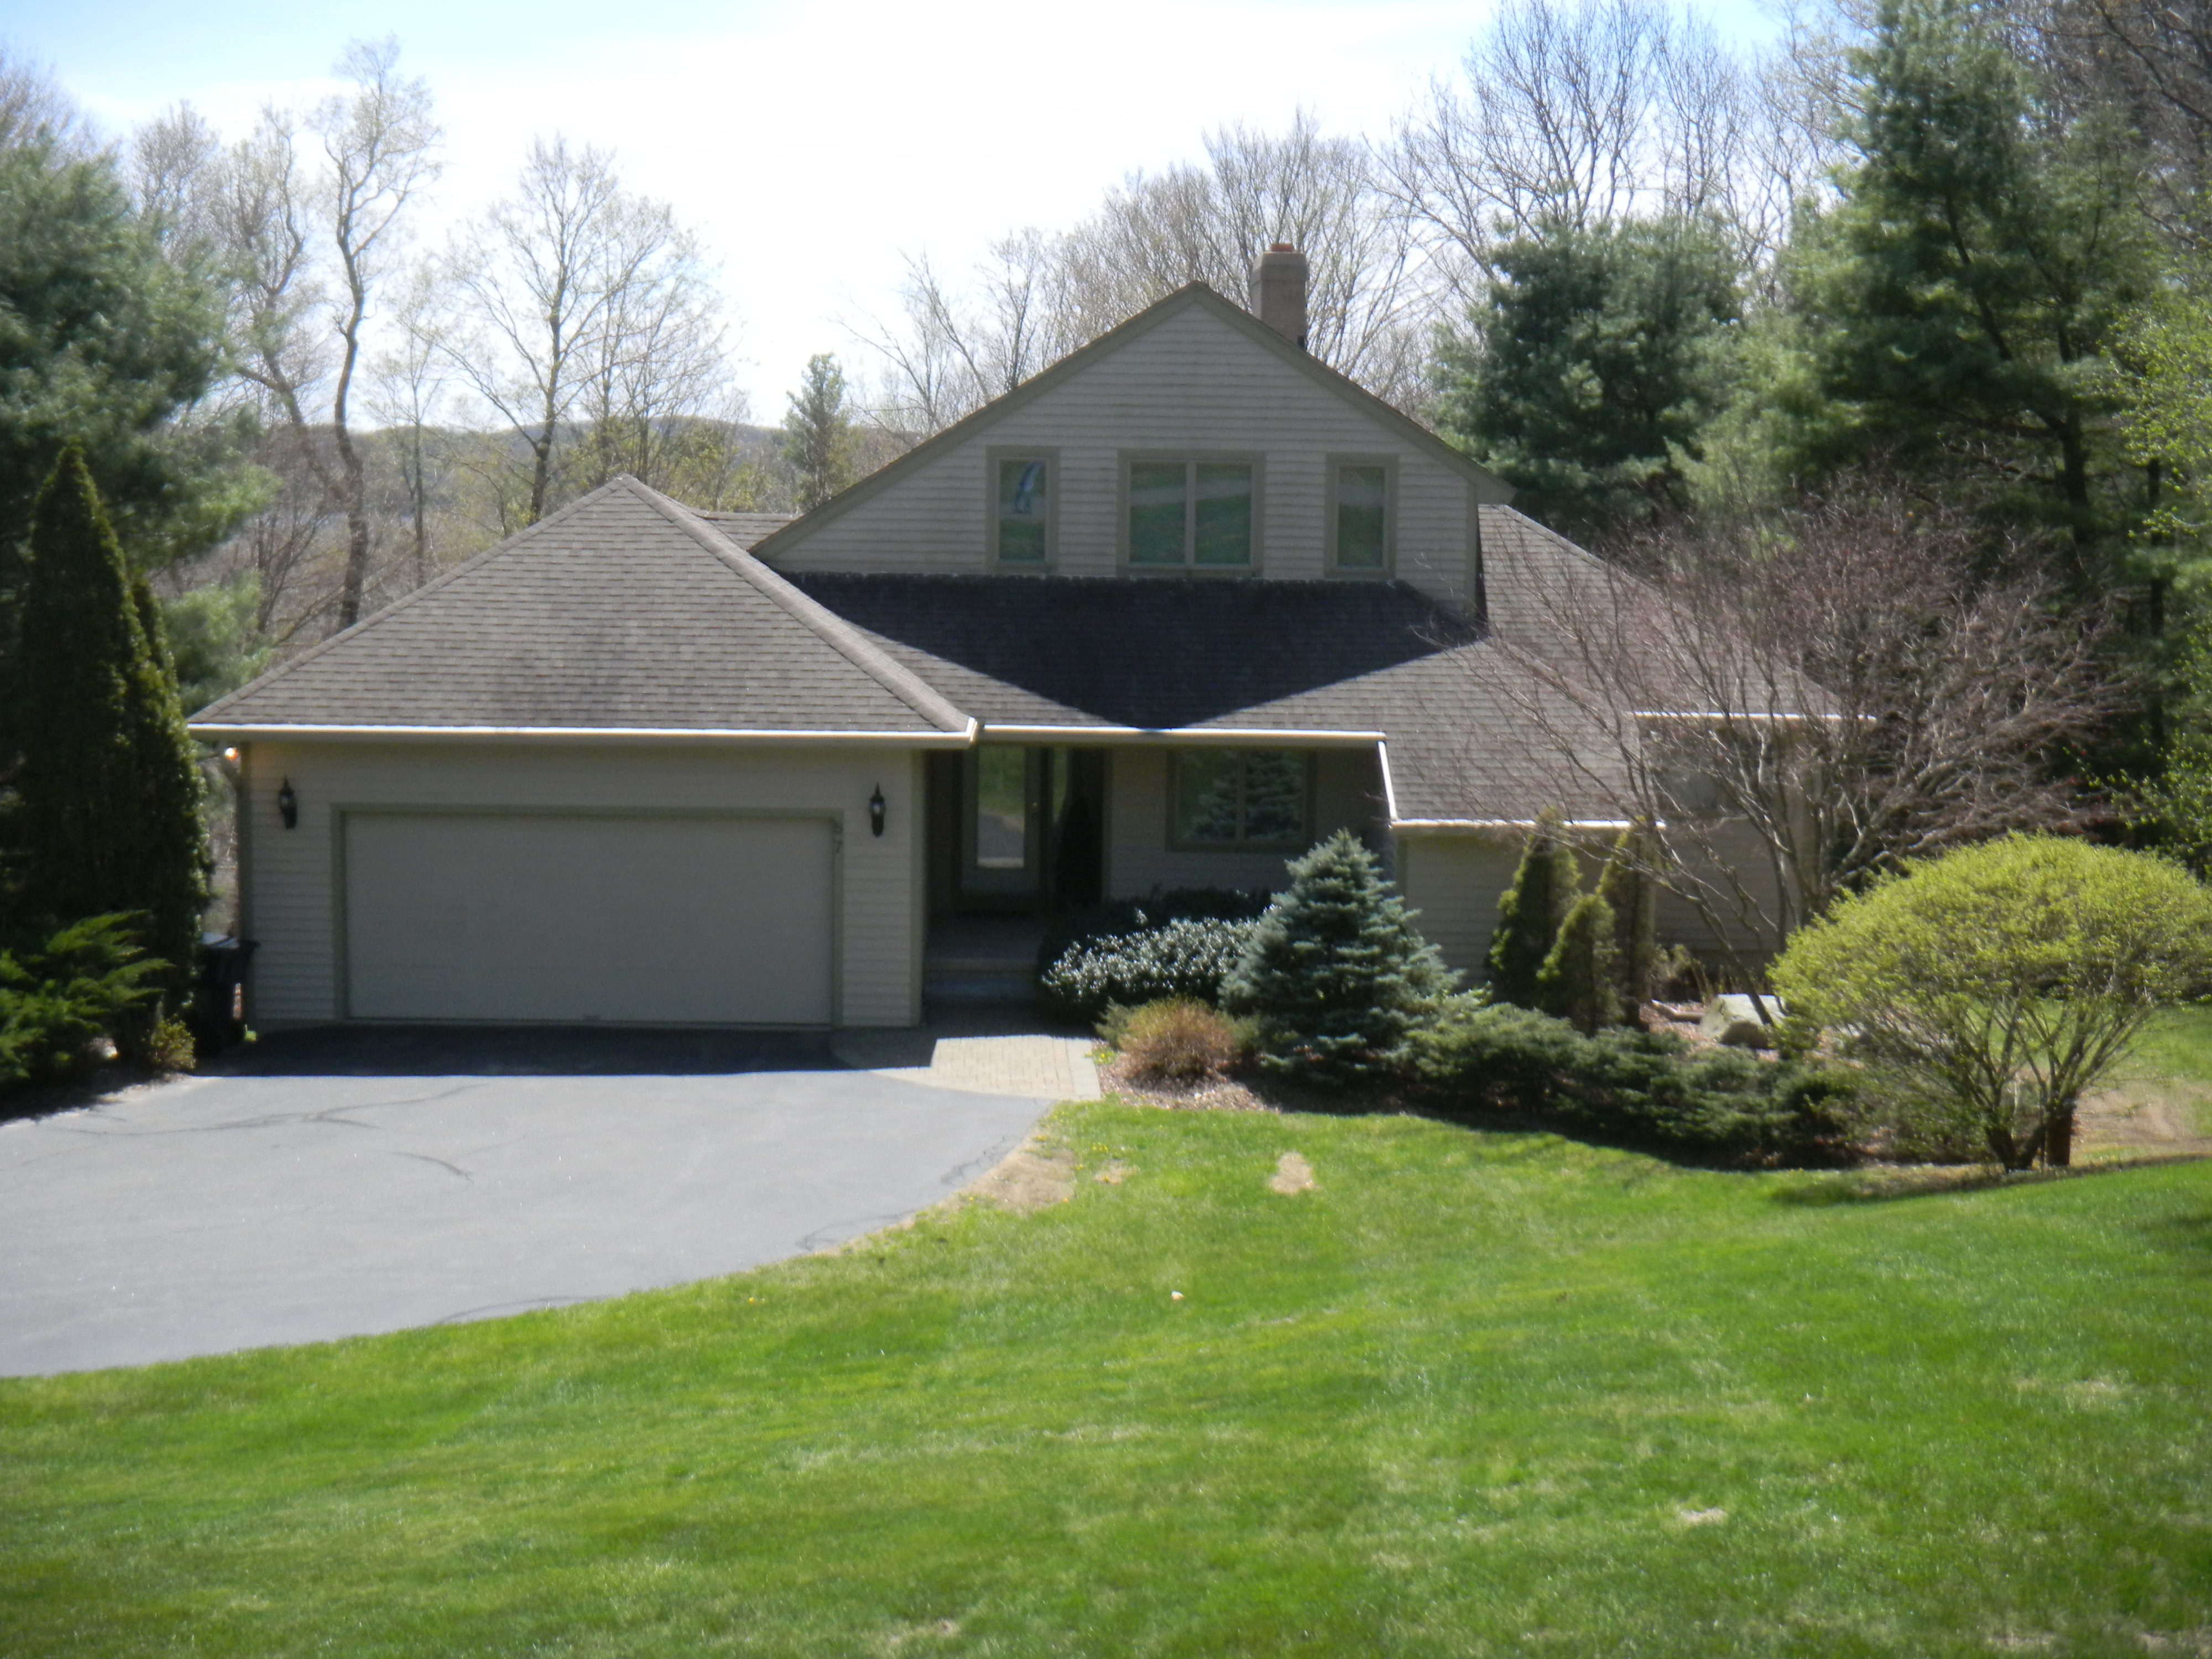 Single Family Home for Sale at Woodridge Lake Country Home 57 Weldon Ct Goshen, Connecticut, 06756 United States